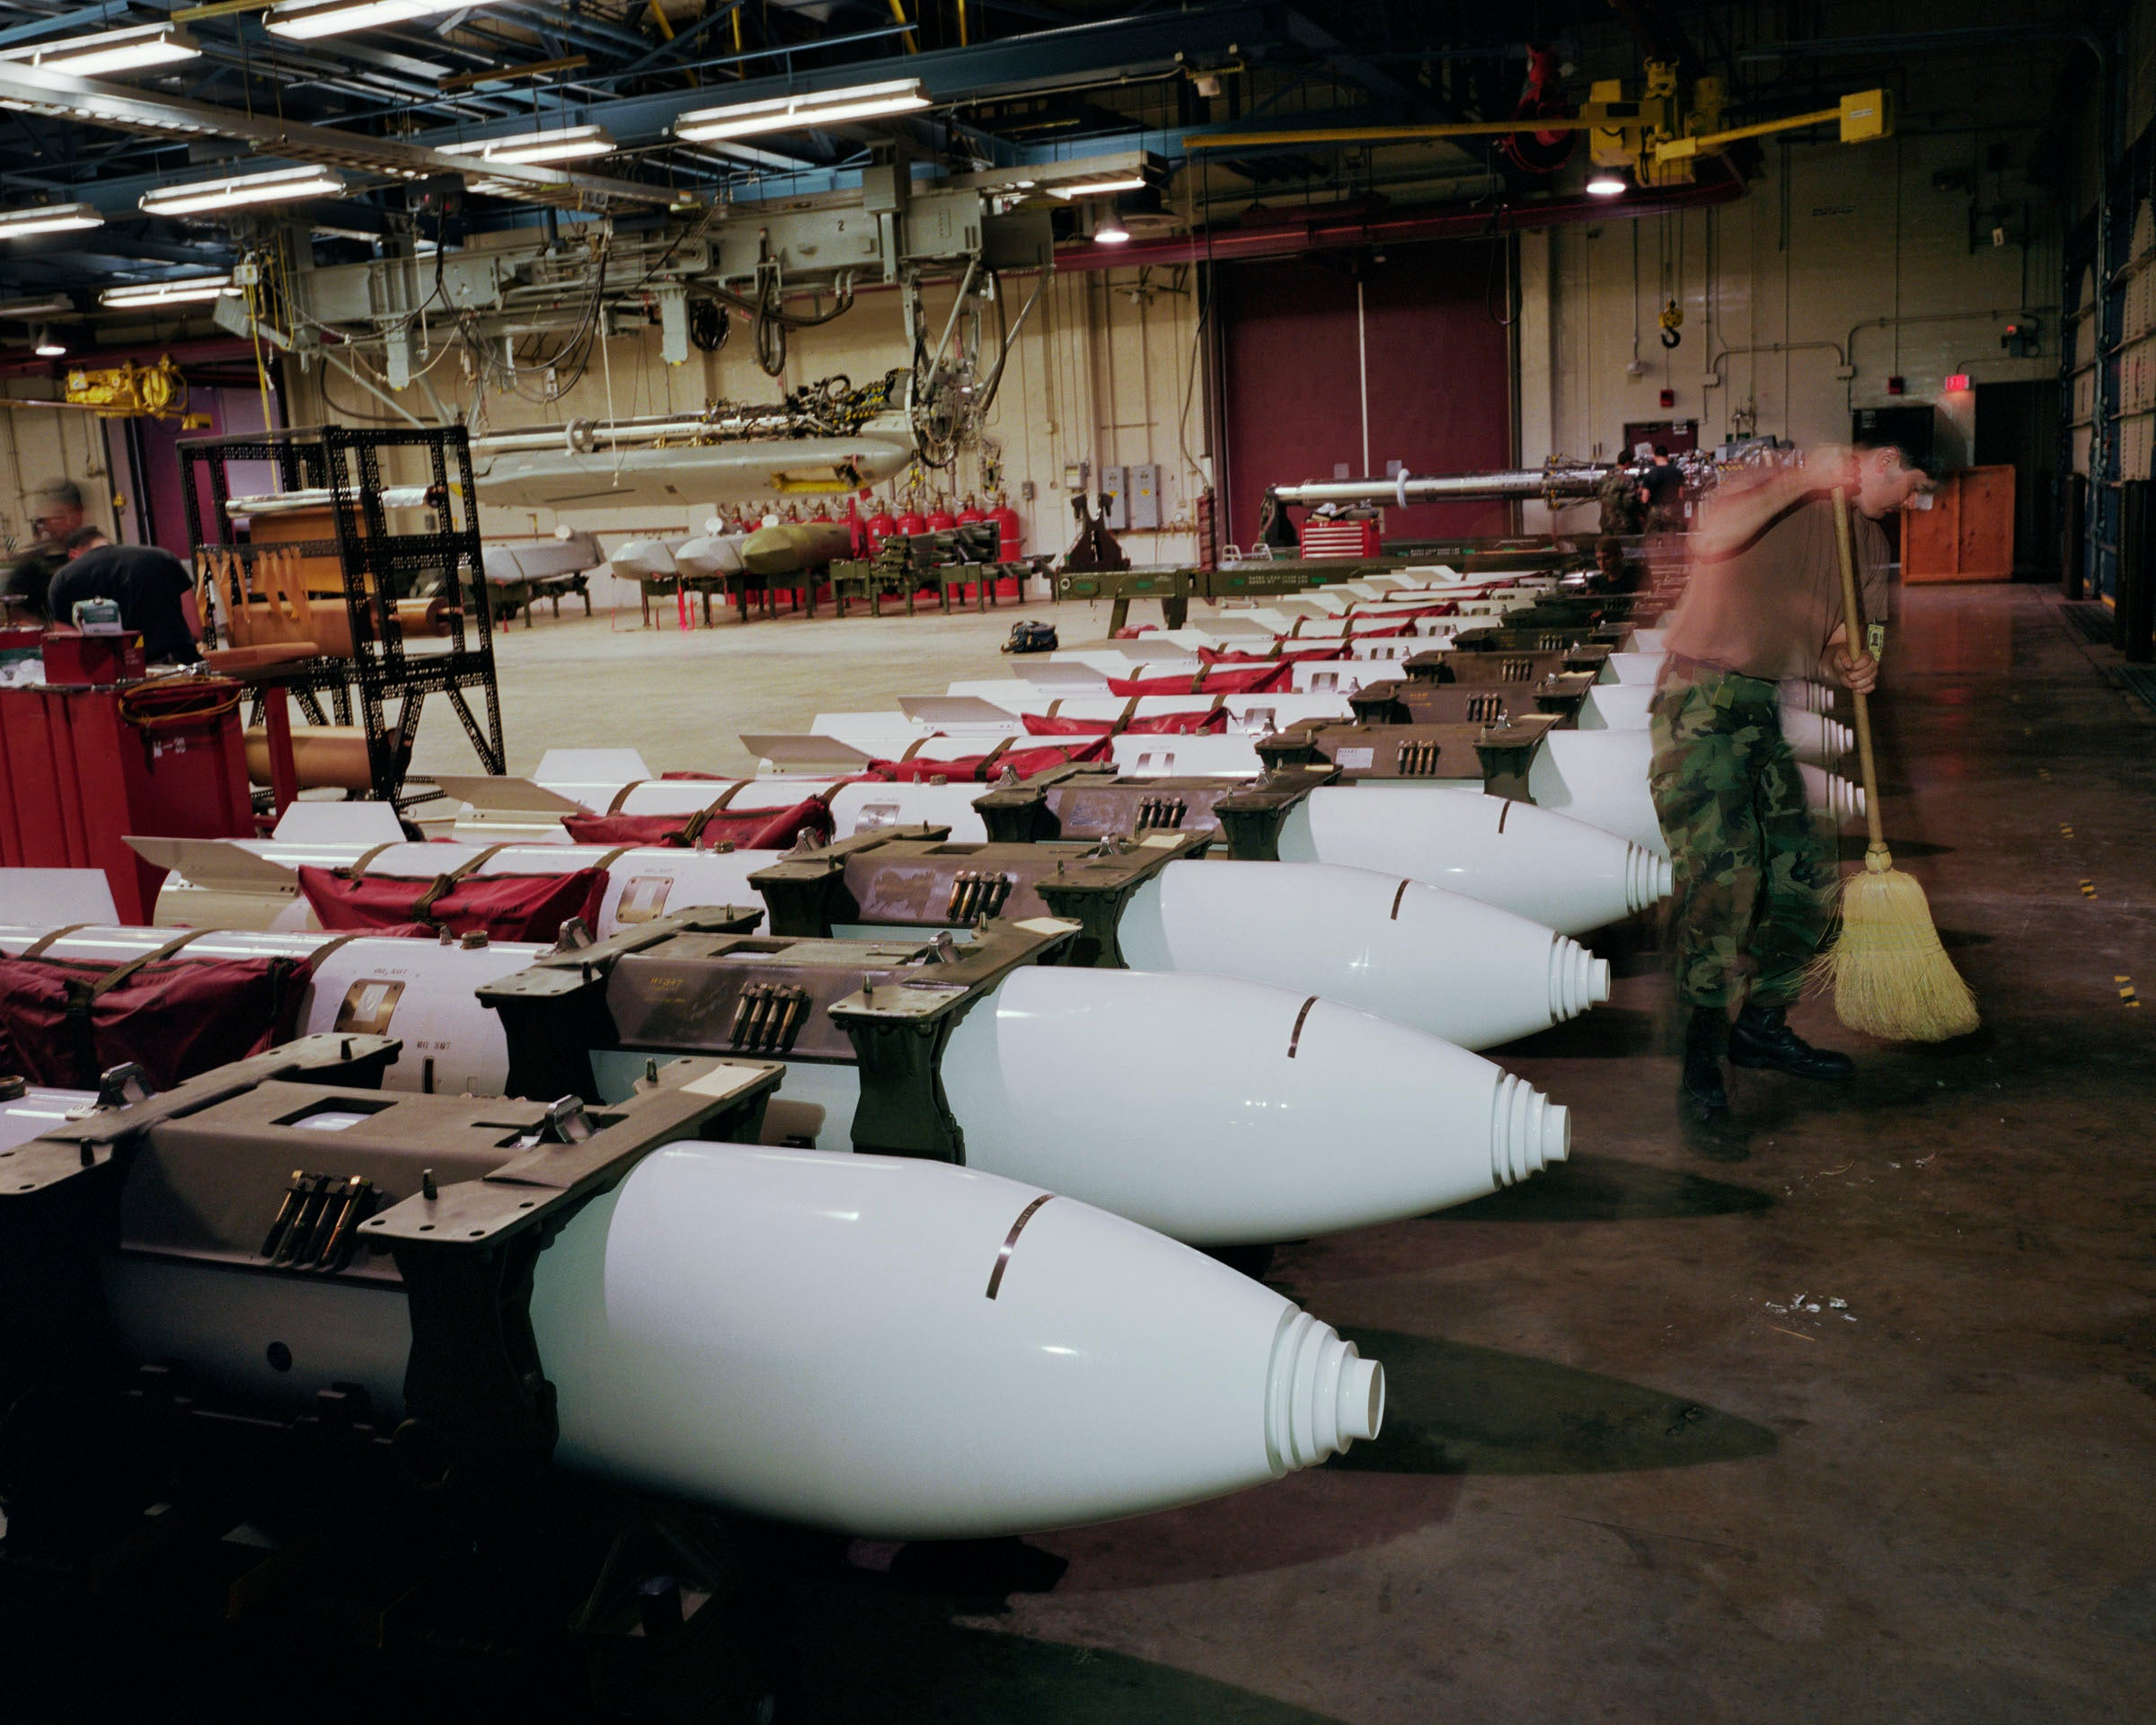 Photo: Paul Shambroom, Untitled (B83 nuclear gravity bombs in Weapons Storage Area, Barksdale Air Force Base, Louisiana.), (#3551/16-17) 1995, Colour coupler print, 48X61 inches Photo Courtesy of Paul Shambroom.